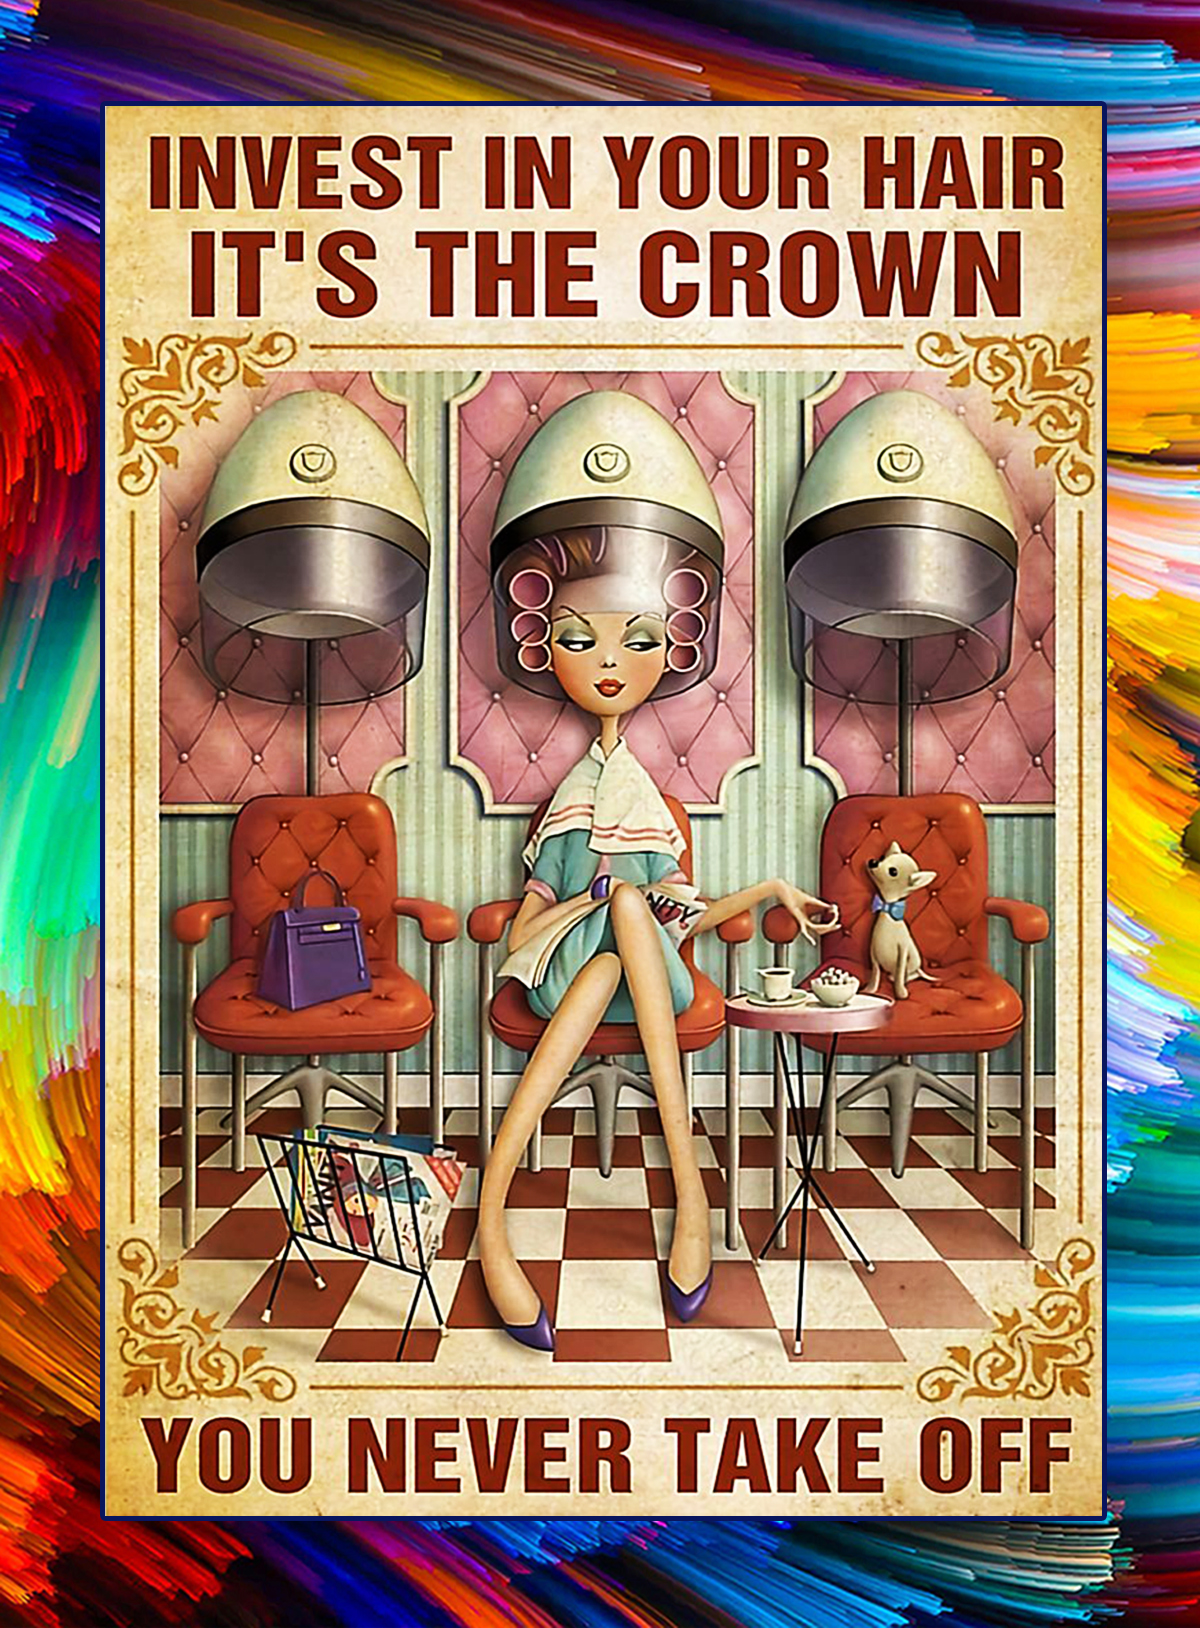 Hairdresser Invest in your hair it's the crown you never take off poster - A4